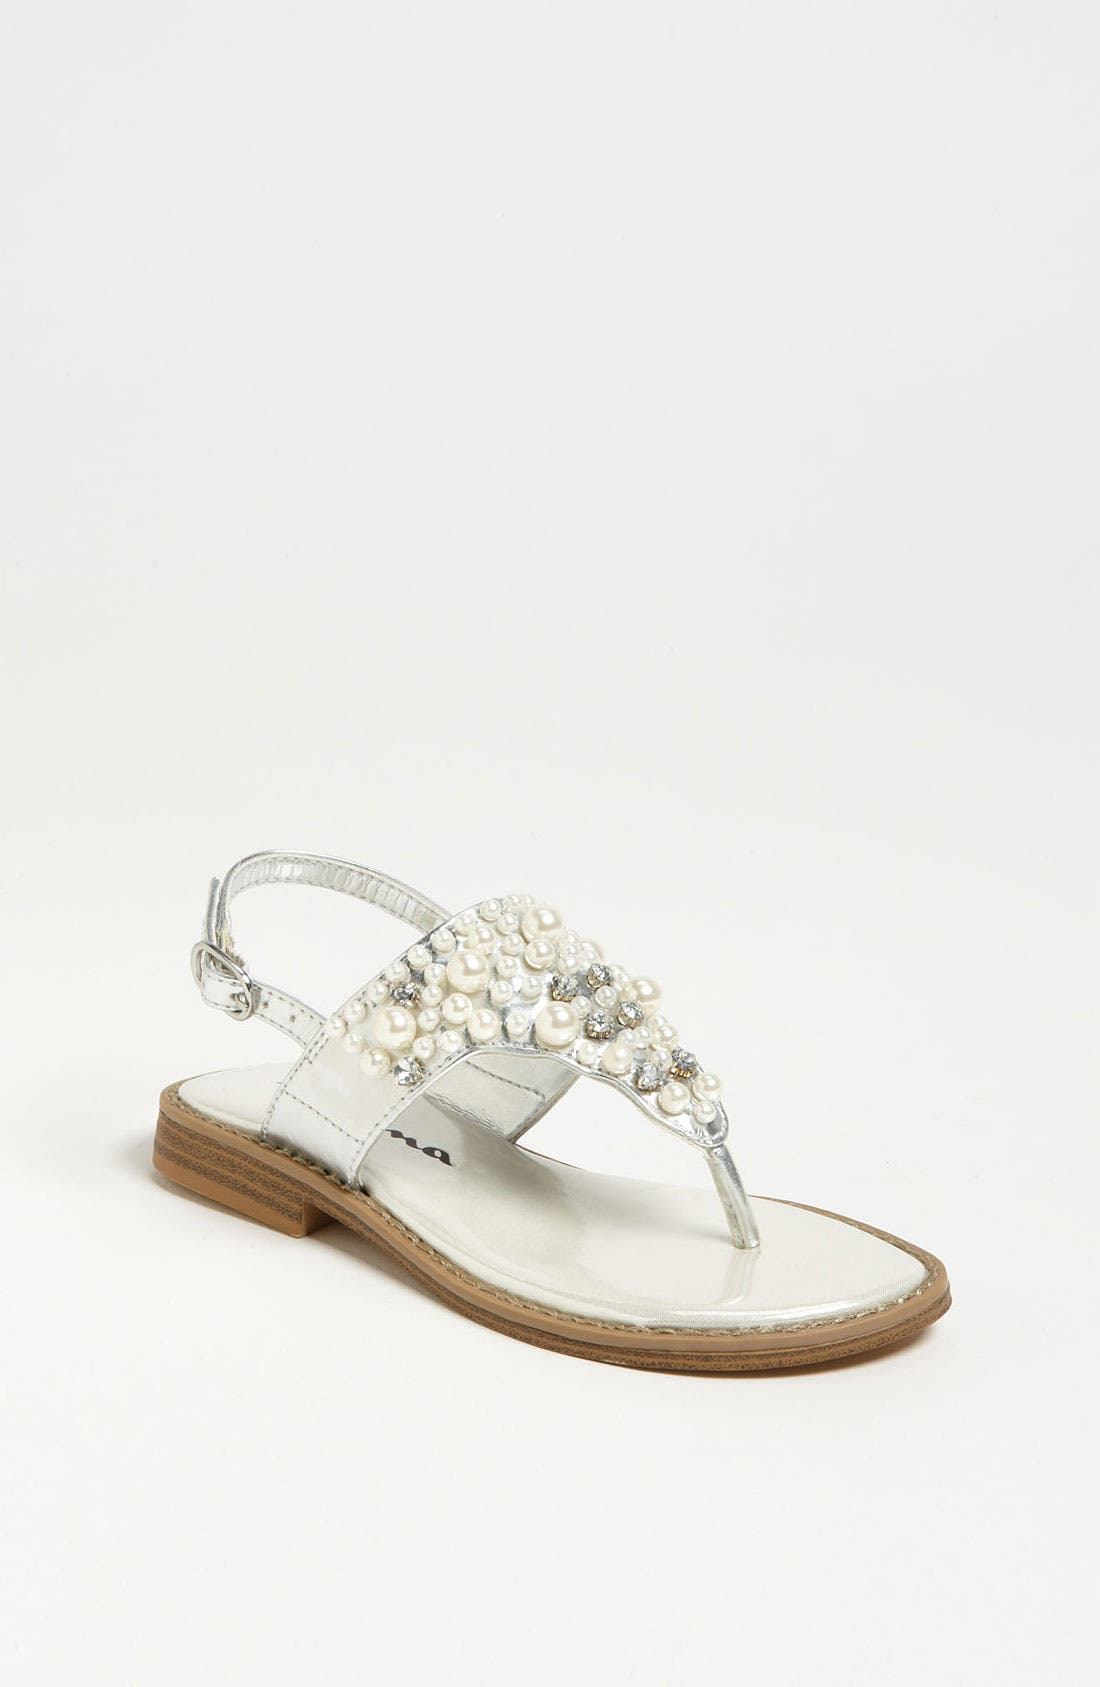 Alternate Image 1 Selected - Nina 'Prissy' Sandal (Walker, Toddler, Little Kid & Big Kid)